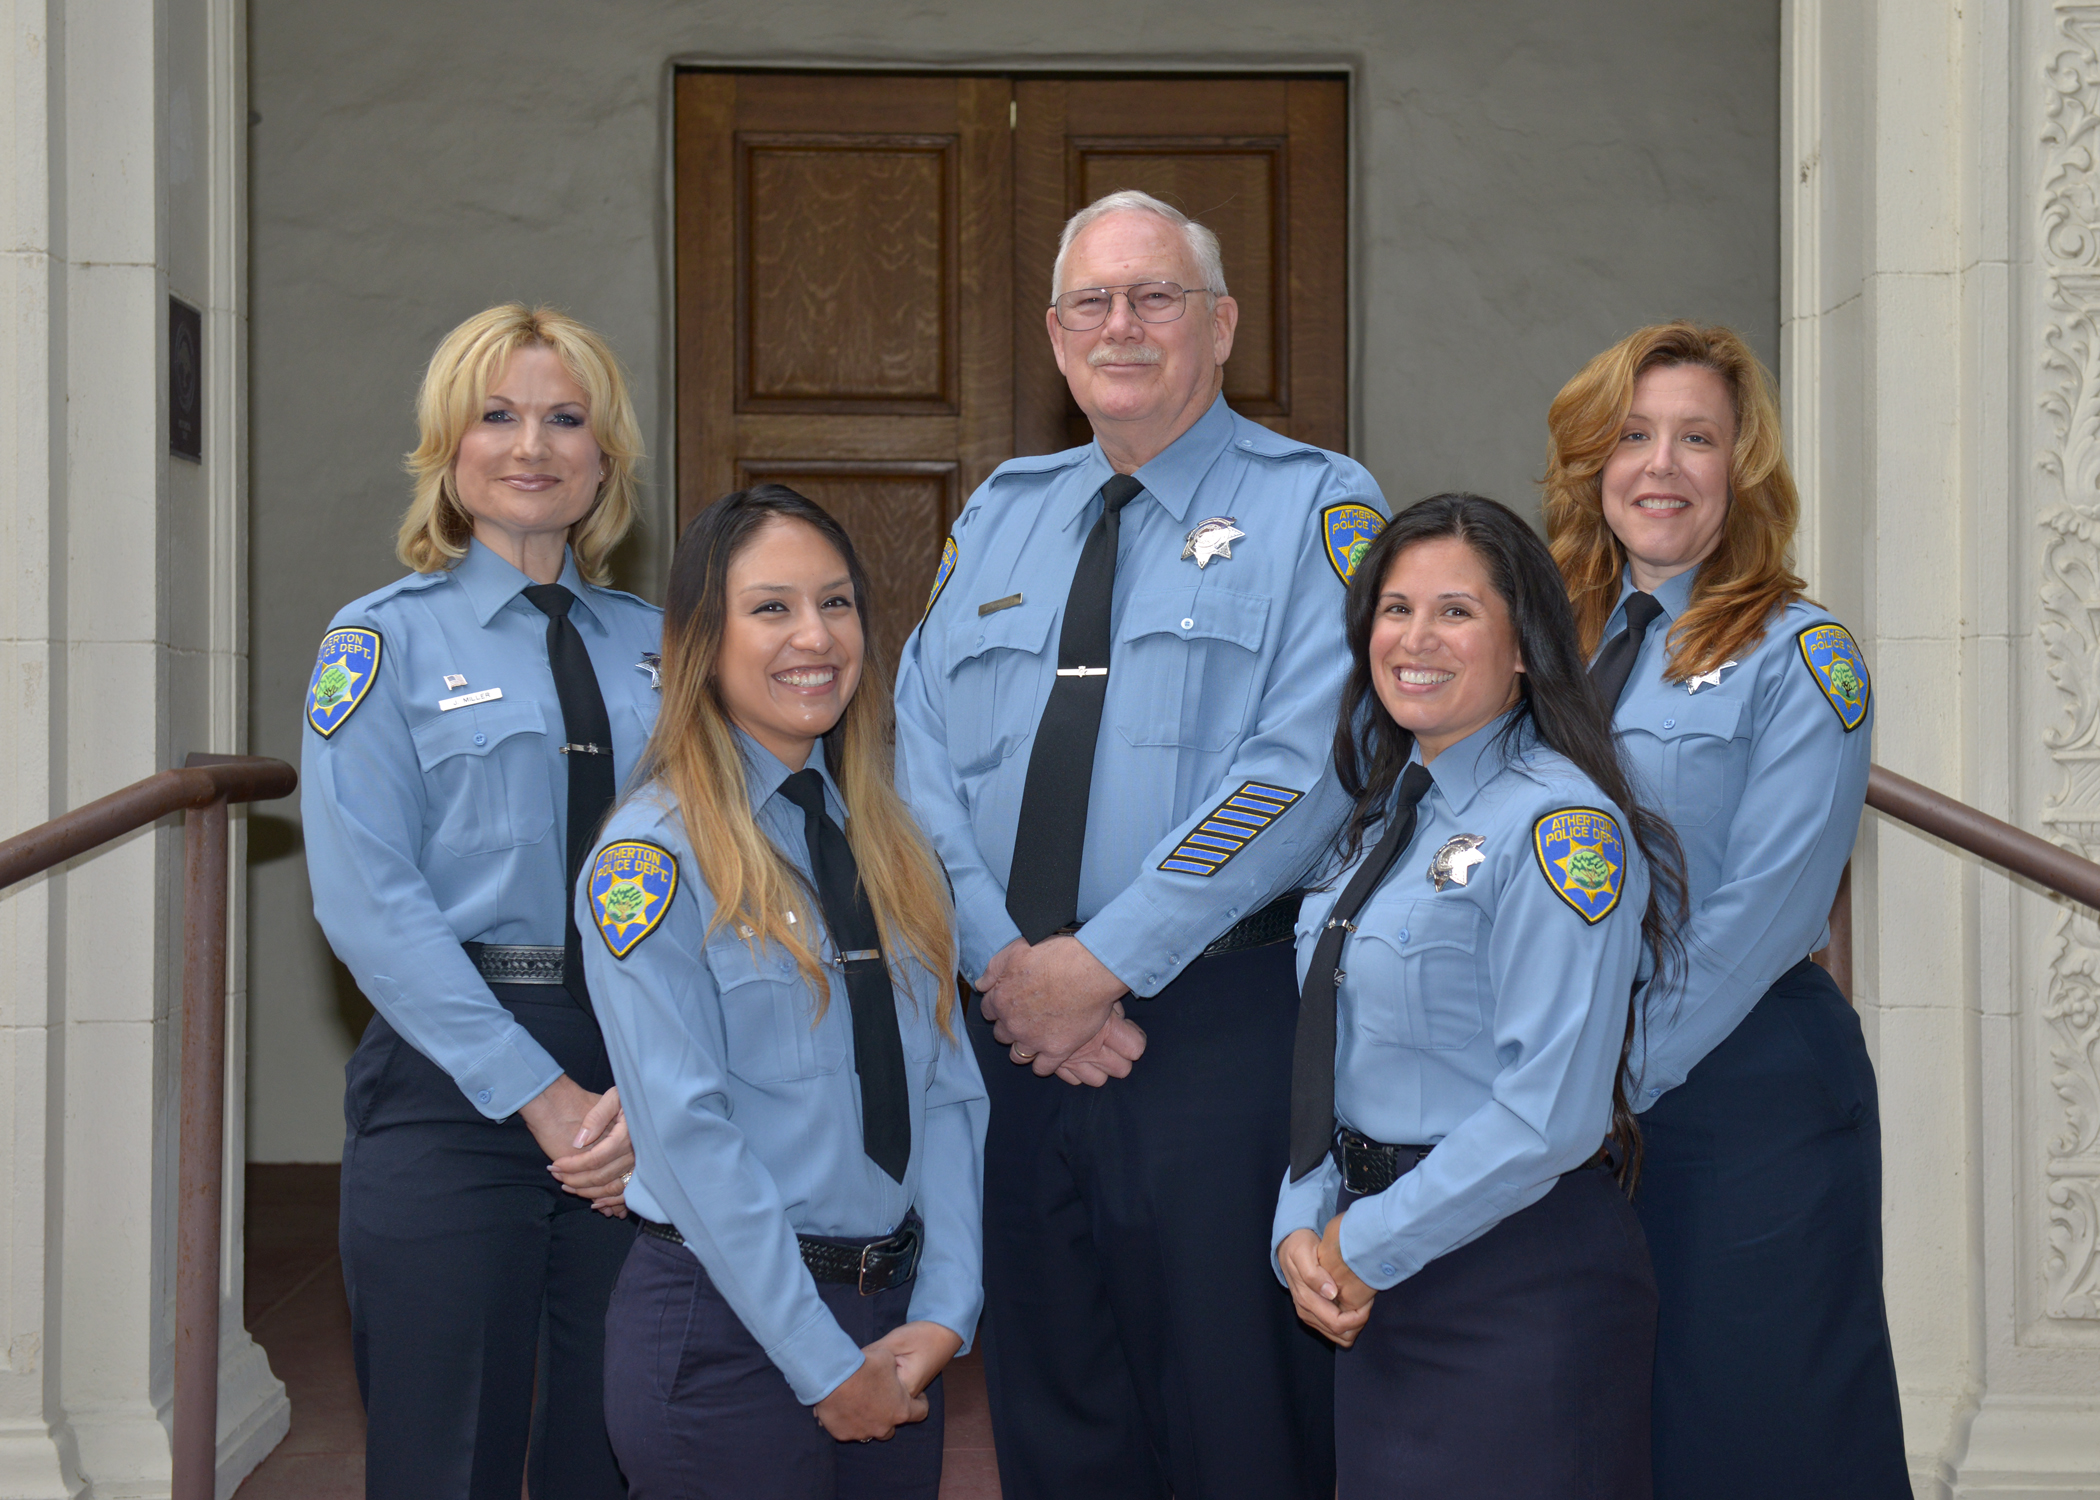 2015 Dispatcher photo